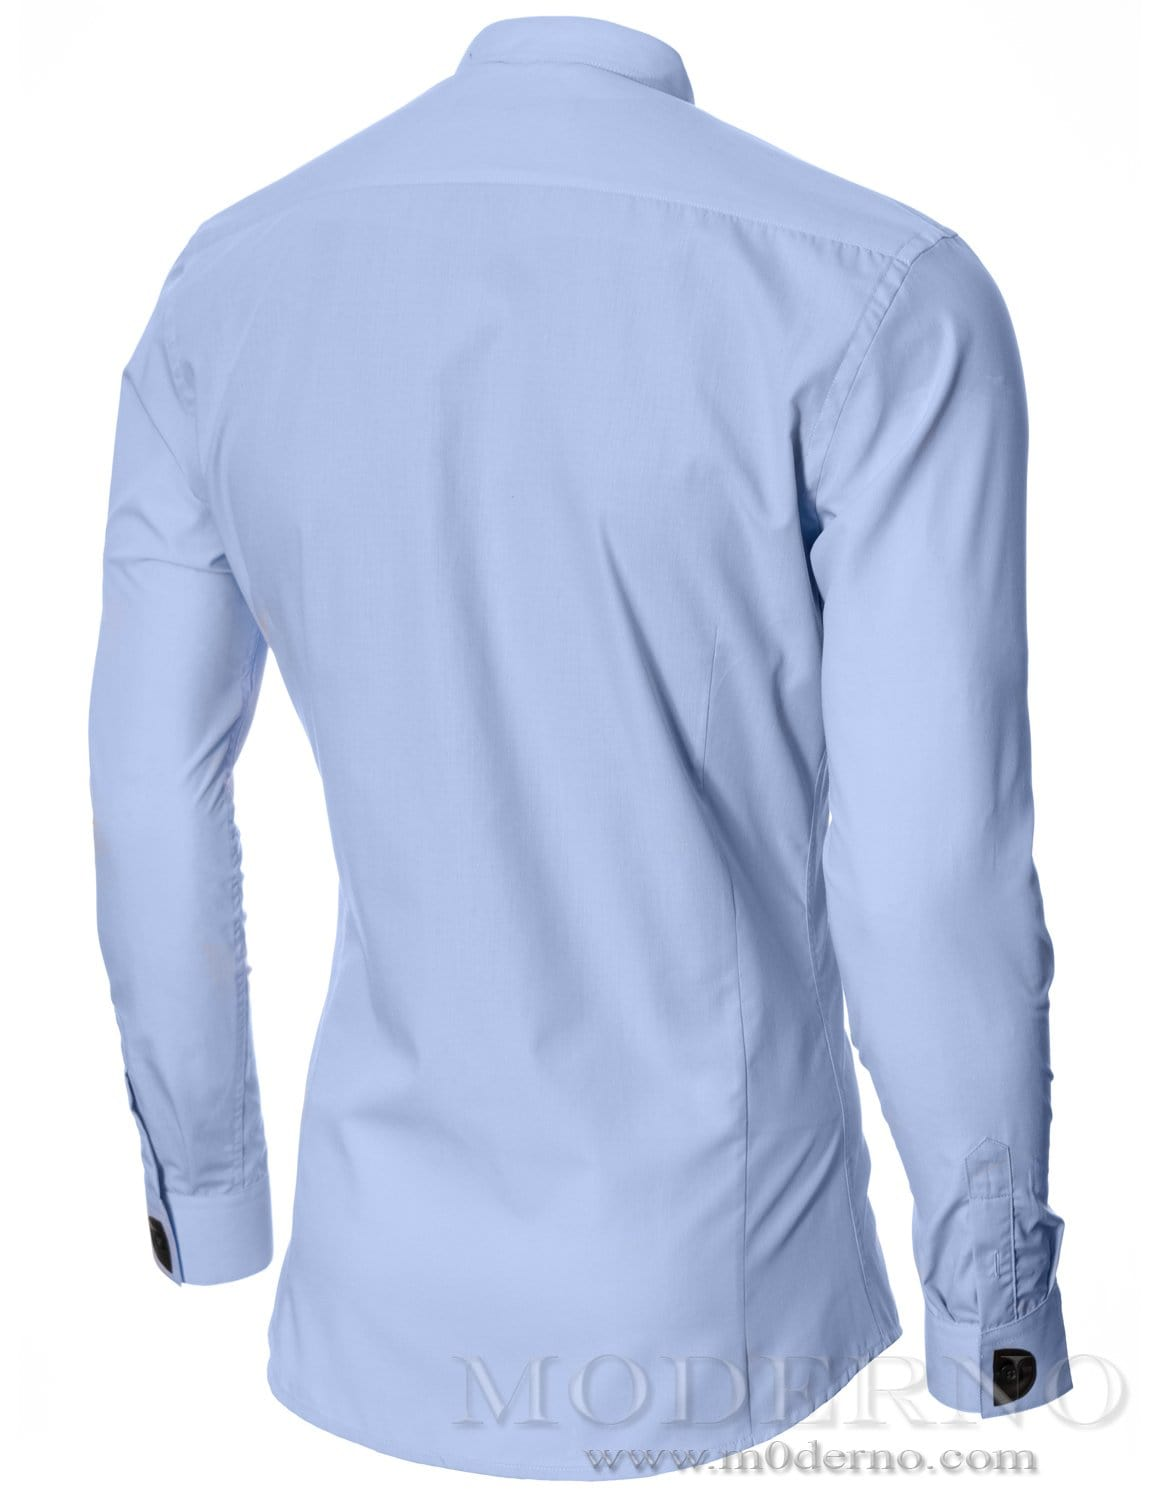 Mens dress shirt sky (MOD1427LS) - MODERNO